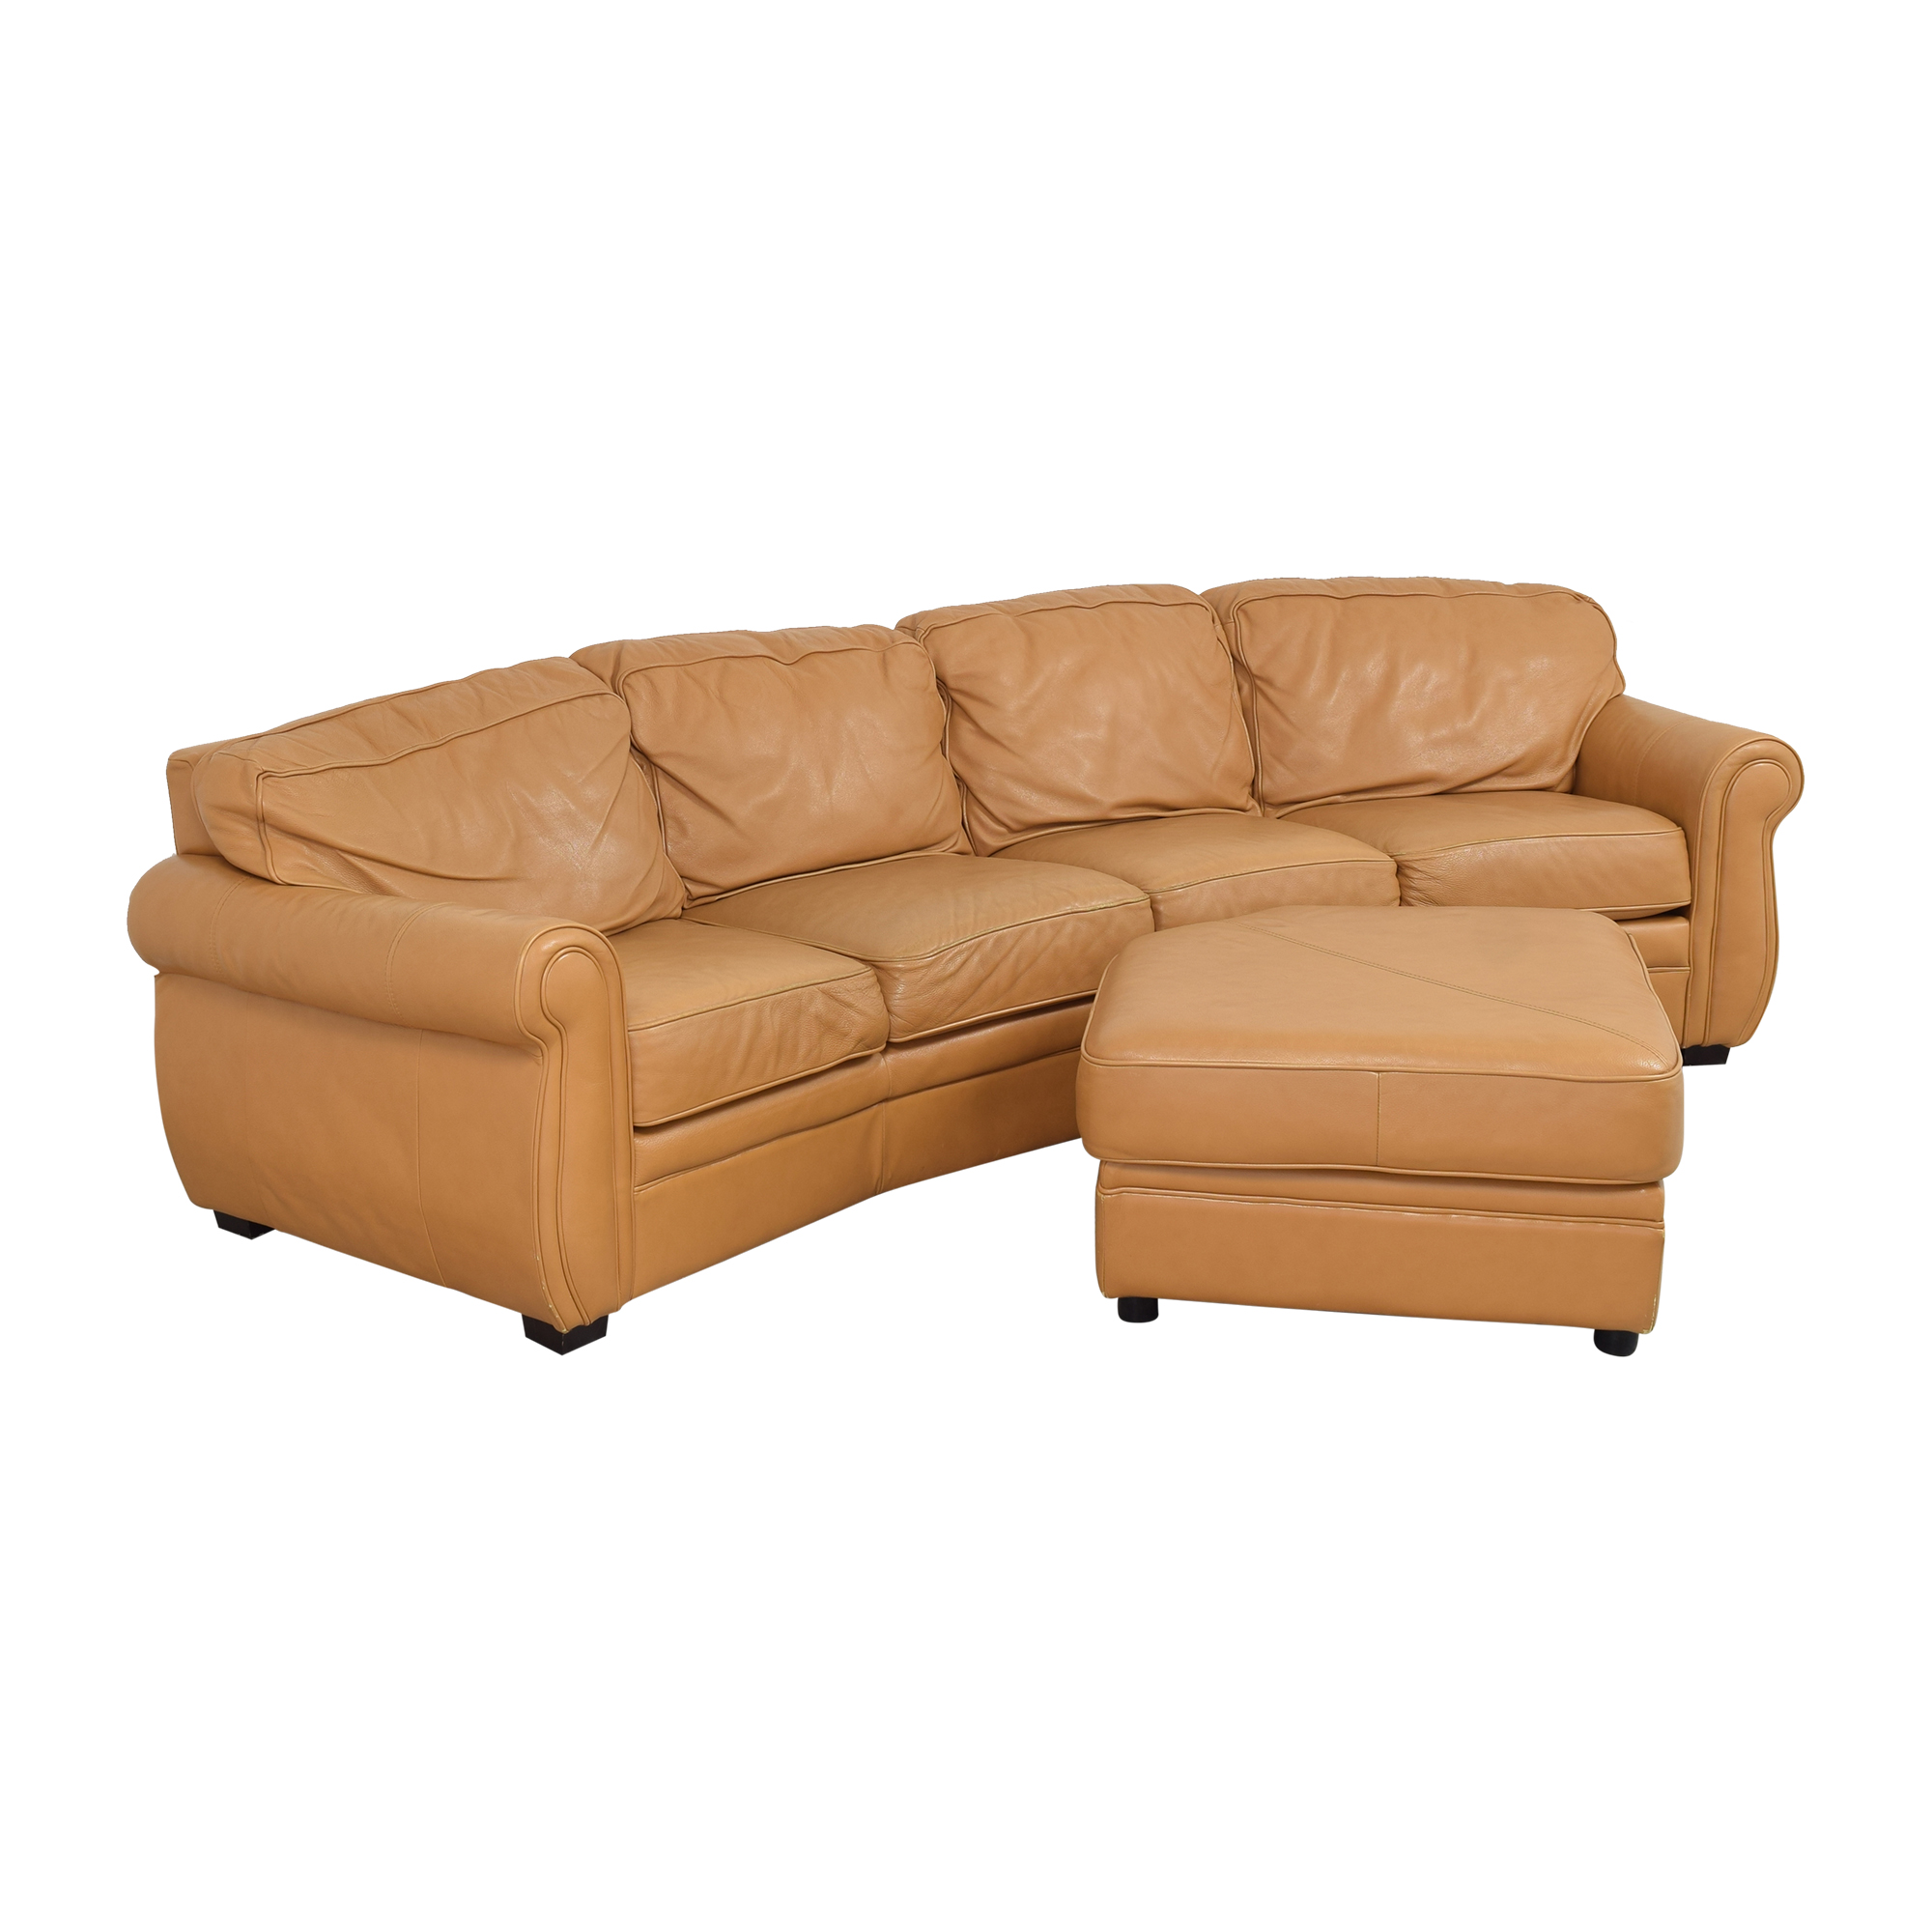 Two Piece Sectional Sofa with Ottoman for sale